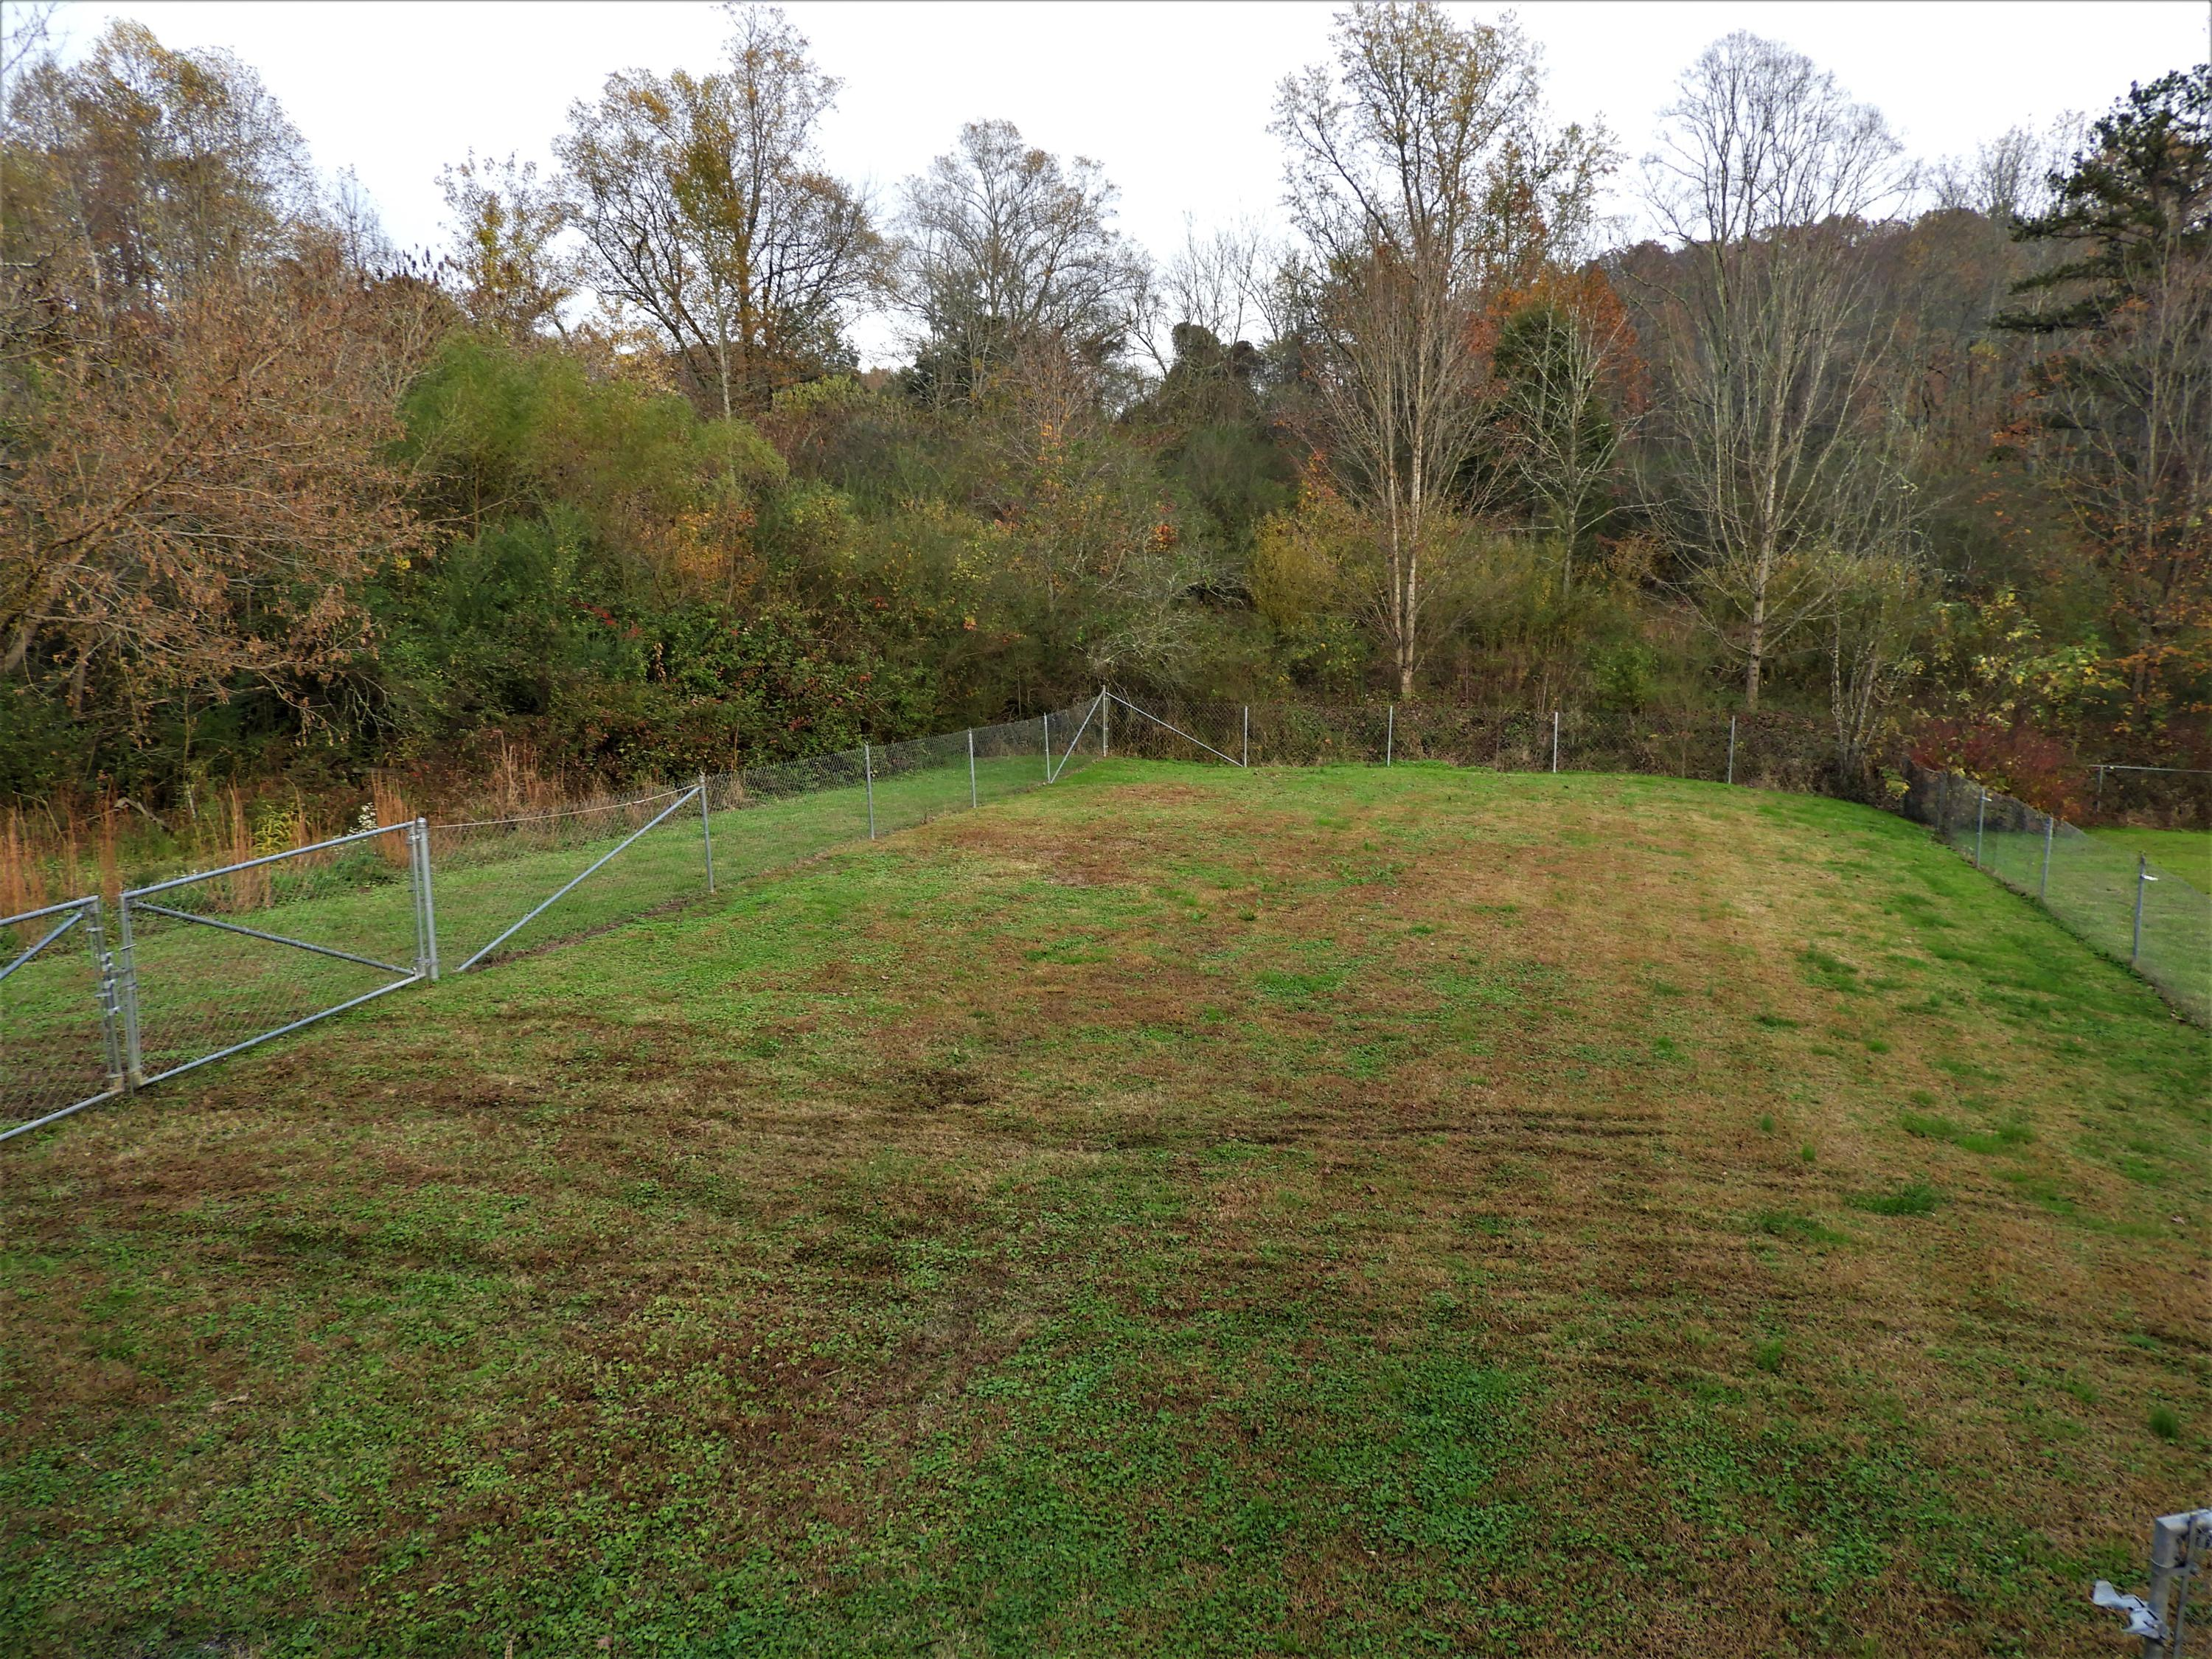 911 Kentucky St, Oliver Springs, Tennessee 37840, 3 Bedrooms Bedrooms, ,1 BathroomBathrooms,Single Family,For Sale,Kentucky,1021766